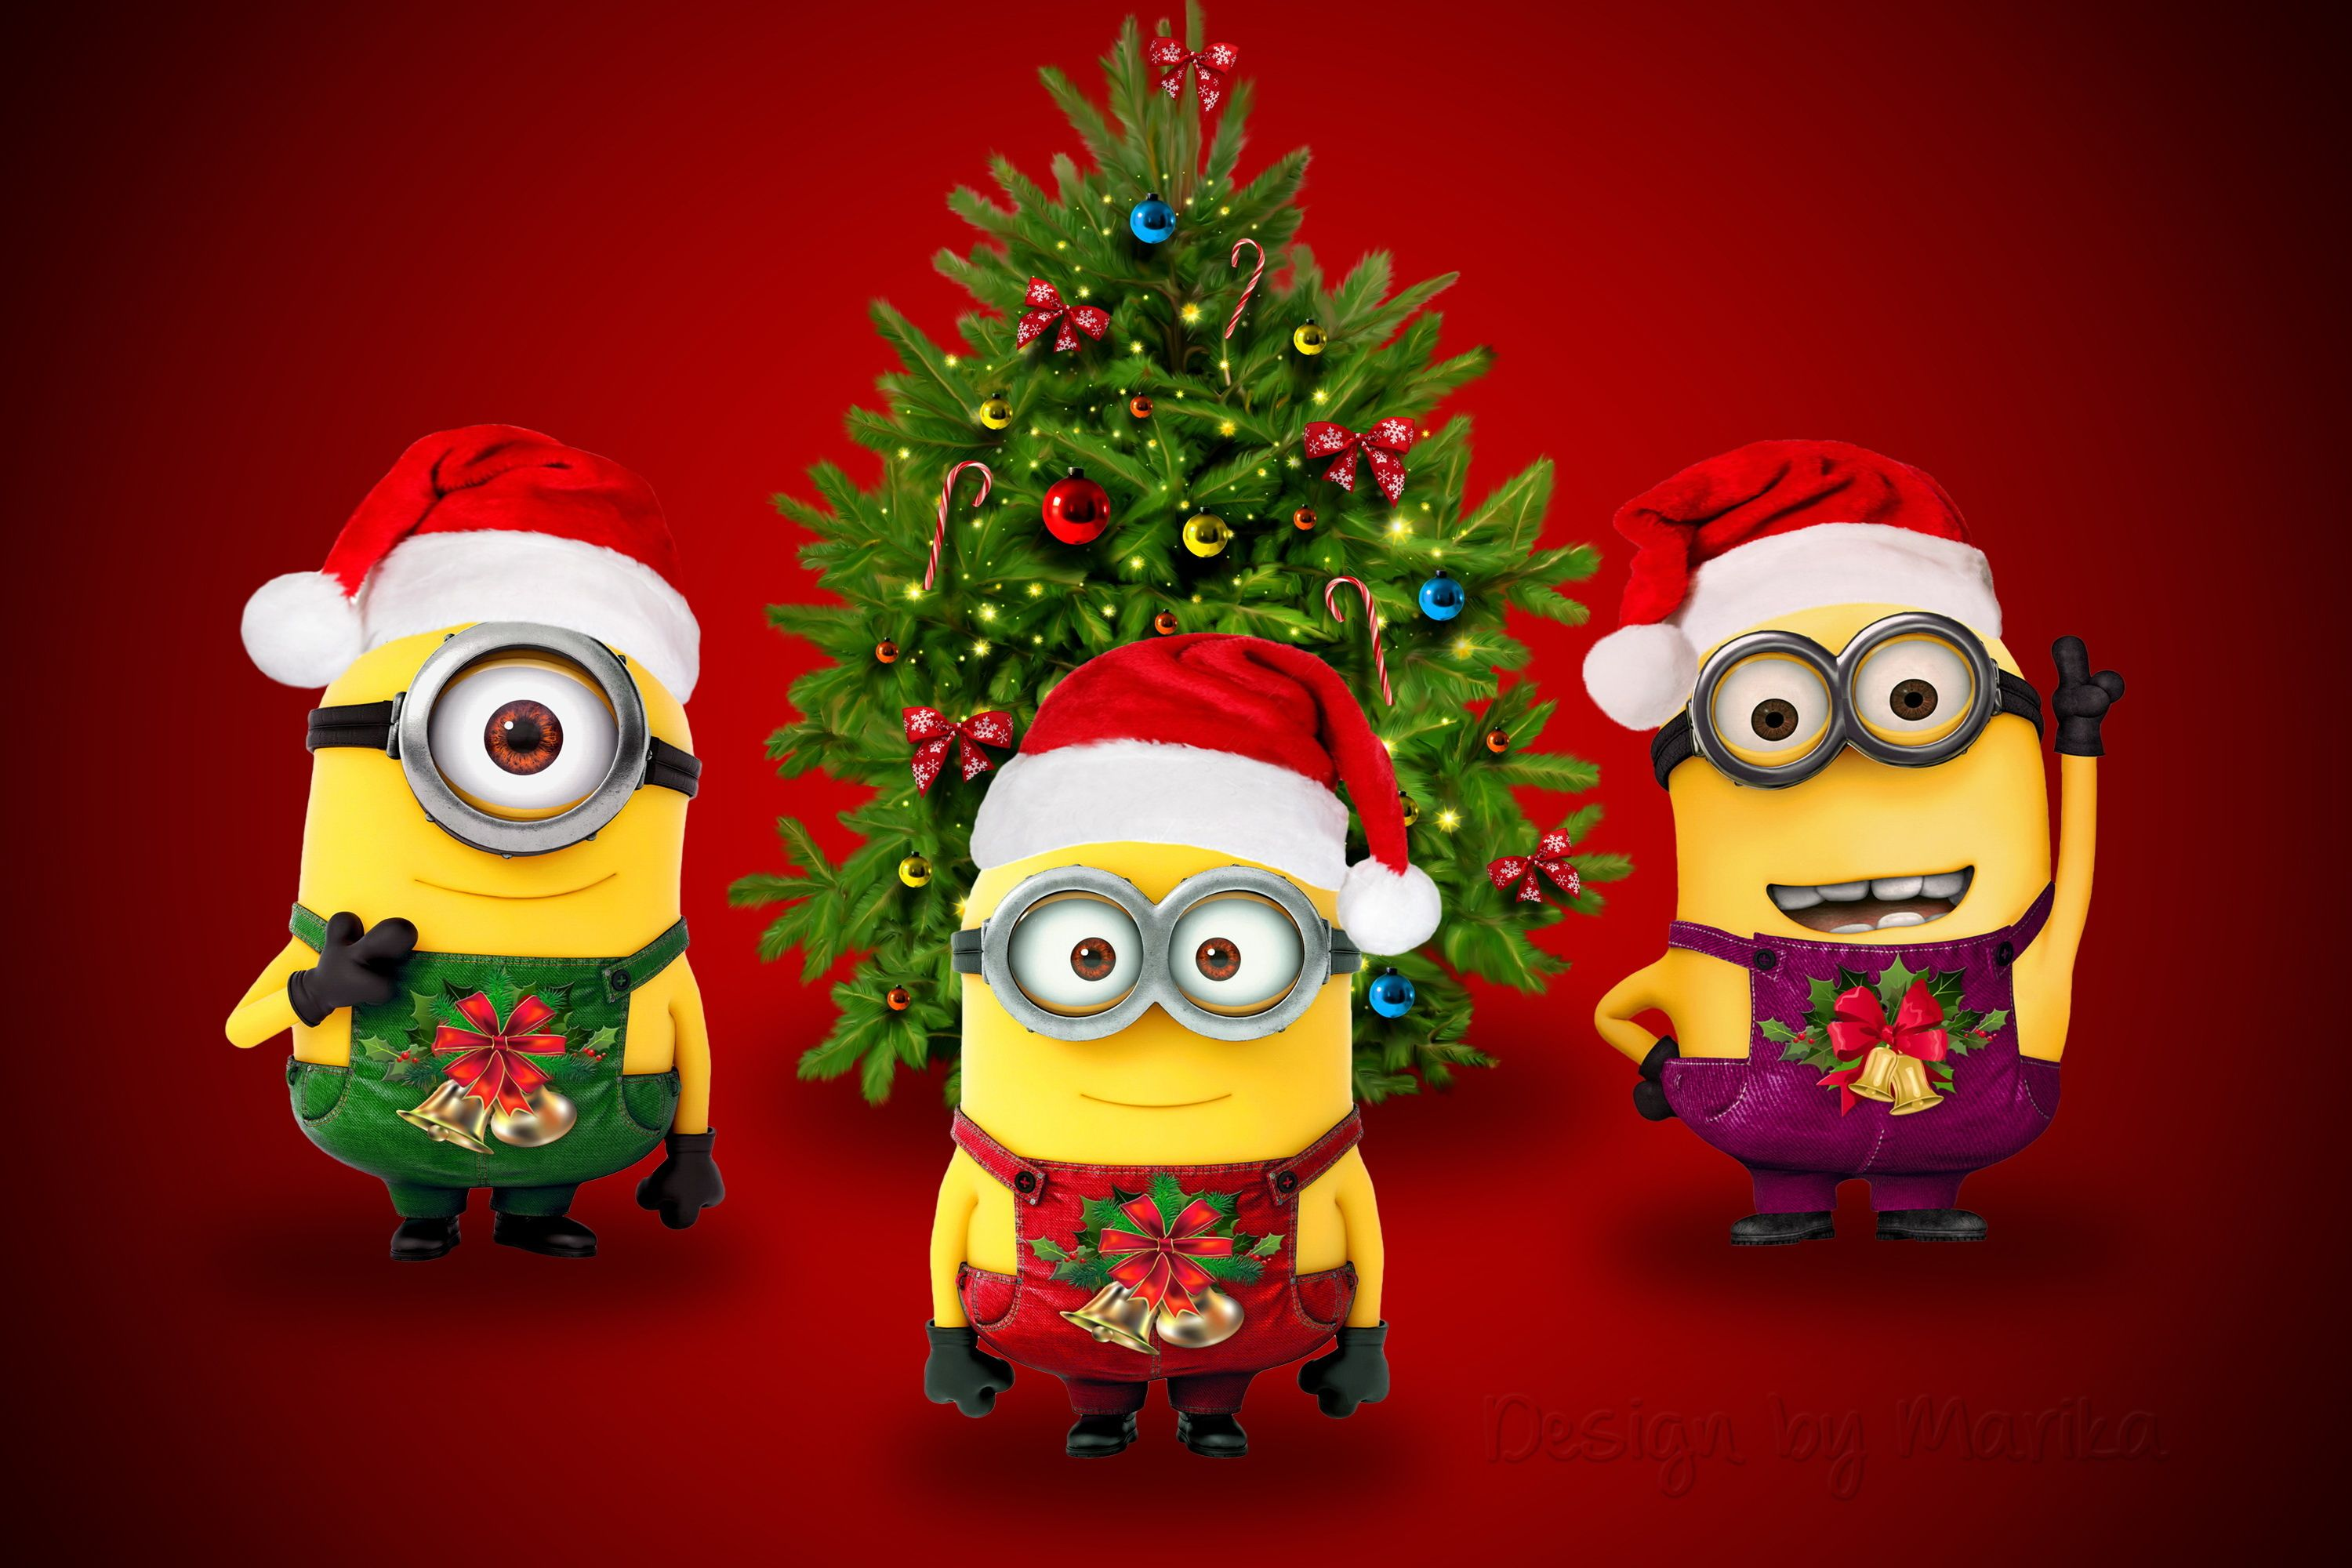 Christmas Minions Wallpaper Christmas Minion Santa New Year